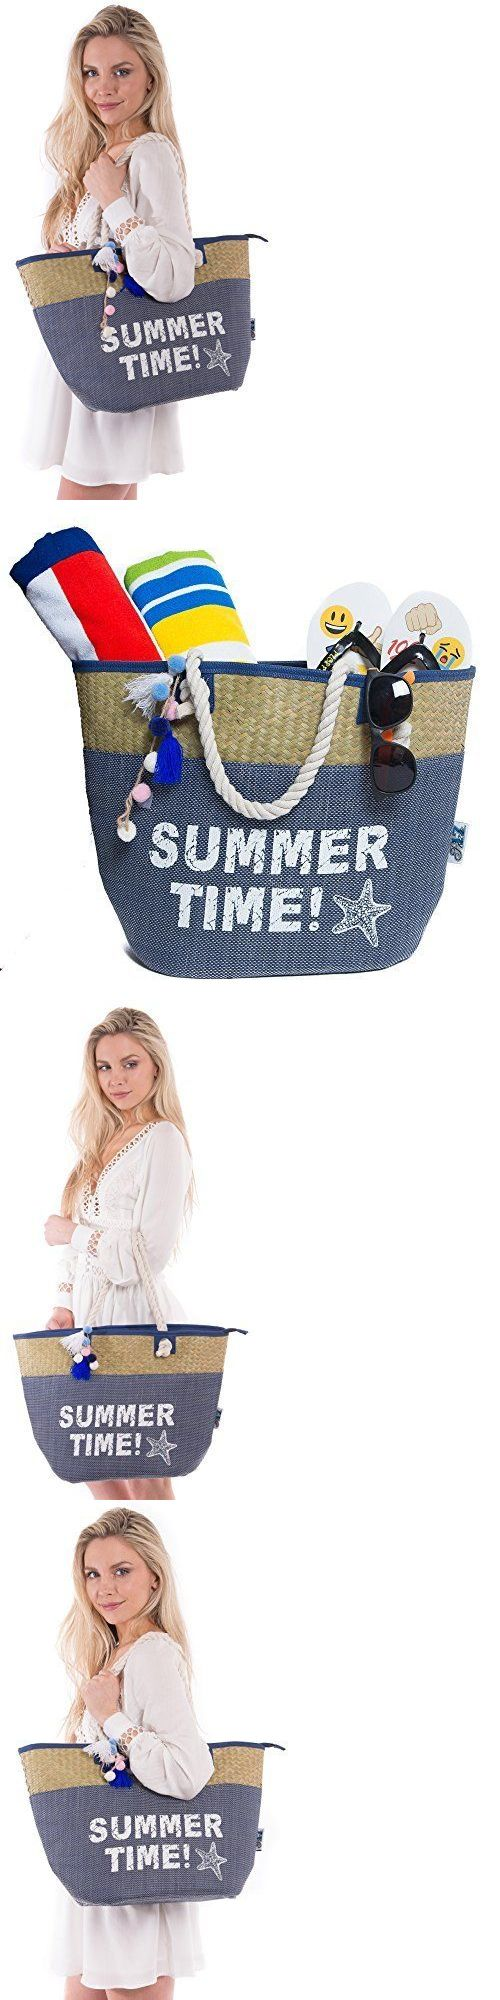 Totes Duffel Bags 152368: Pier 17 Mariner Canvas Beach Bag Tote For Beach And Travel Navy, New -> BUY IT NOW ONLY: $35.44 on eBay!